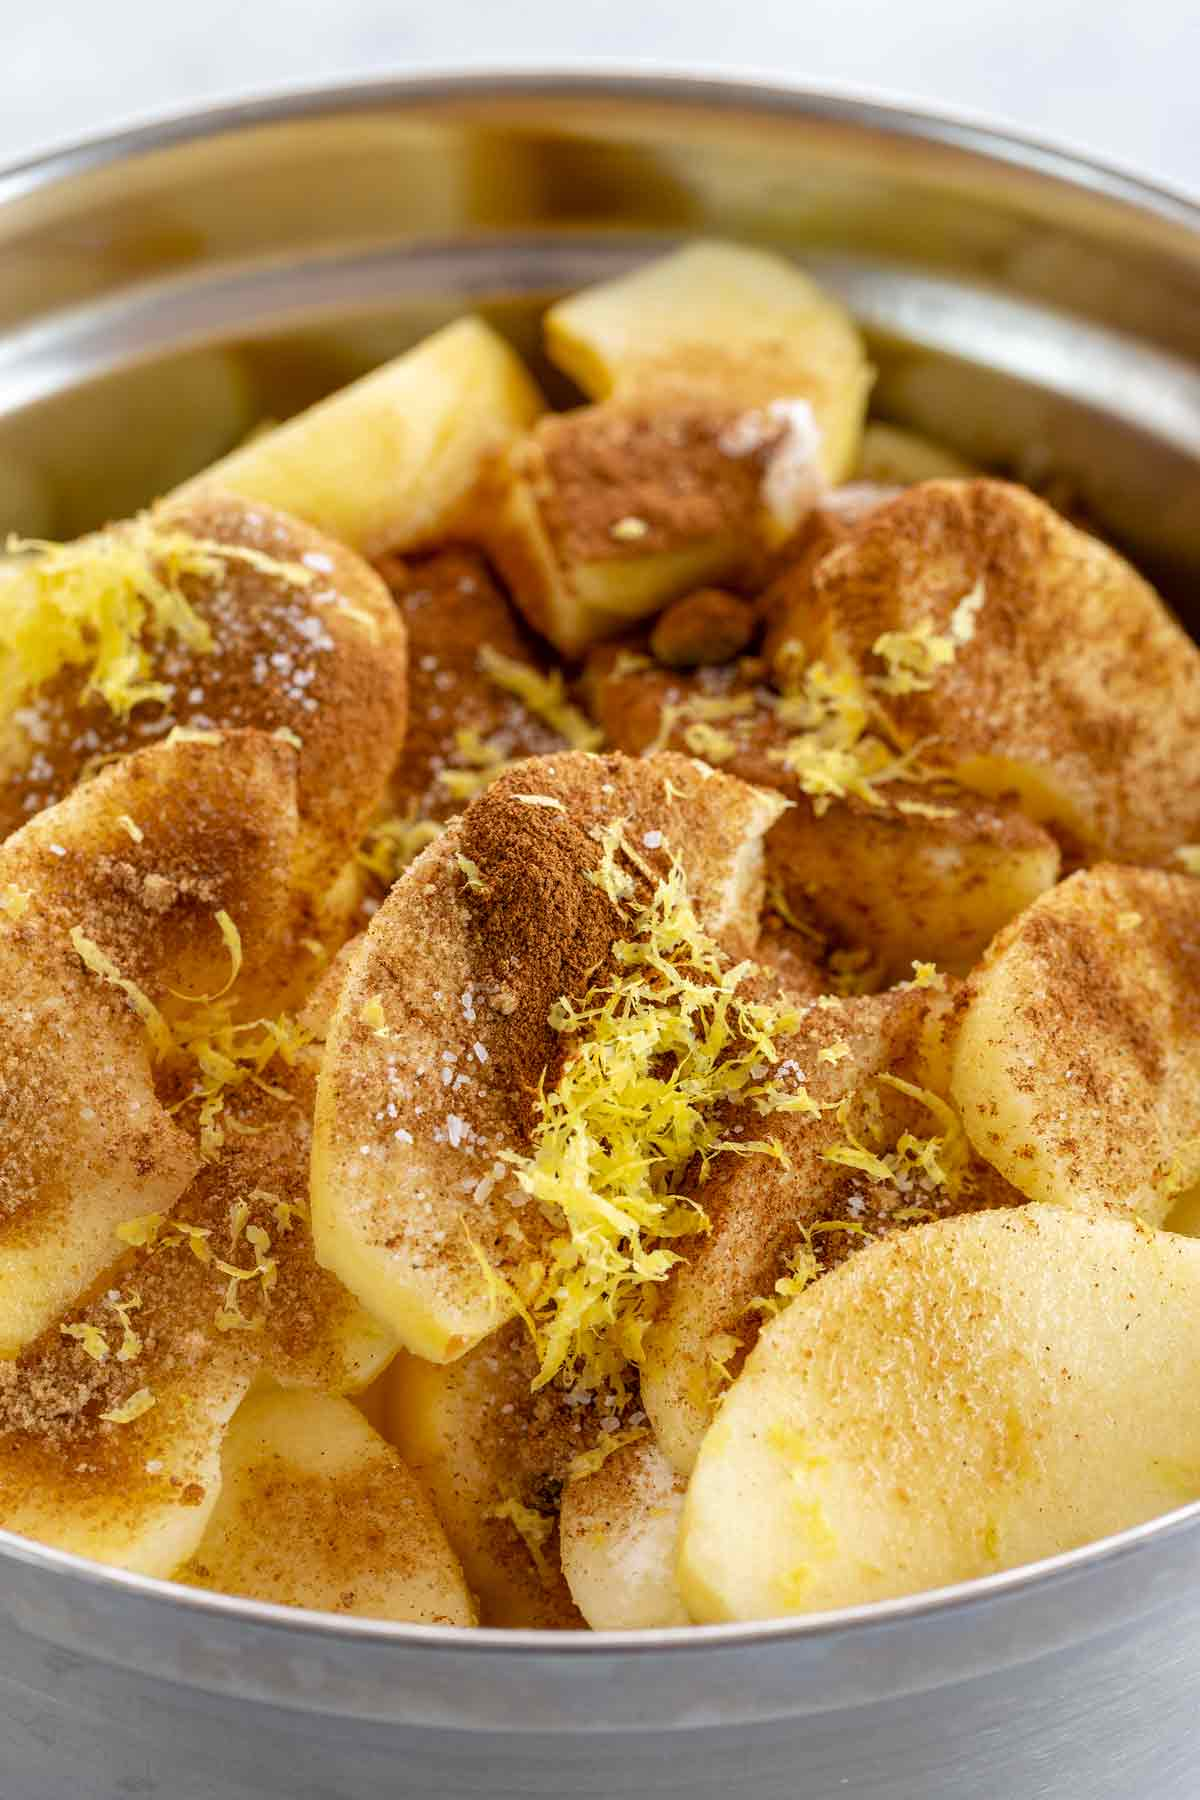 Slices of Honeycrisp apples in a bowl with cinnamon spices and lemon zest on top